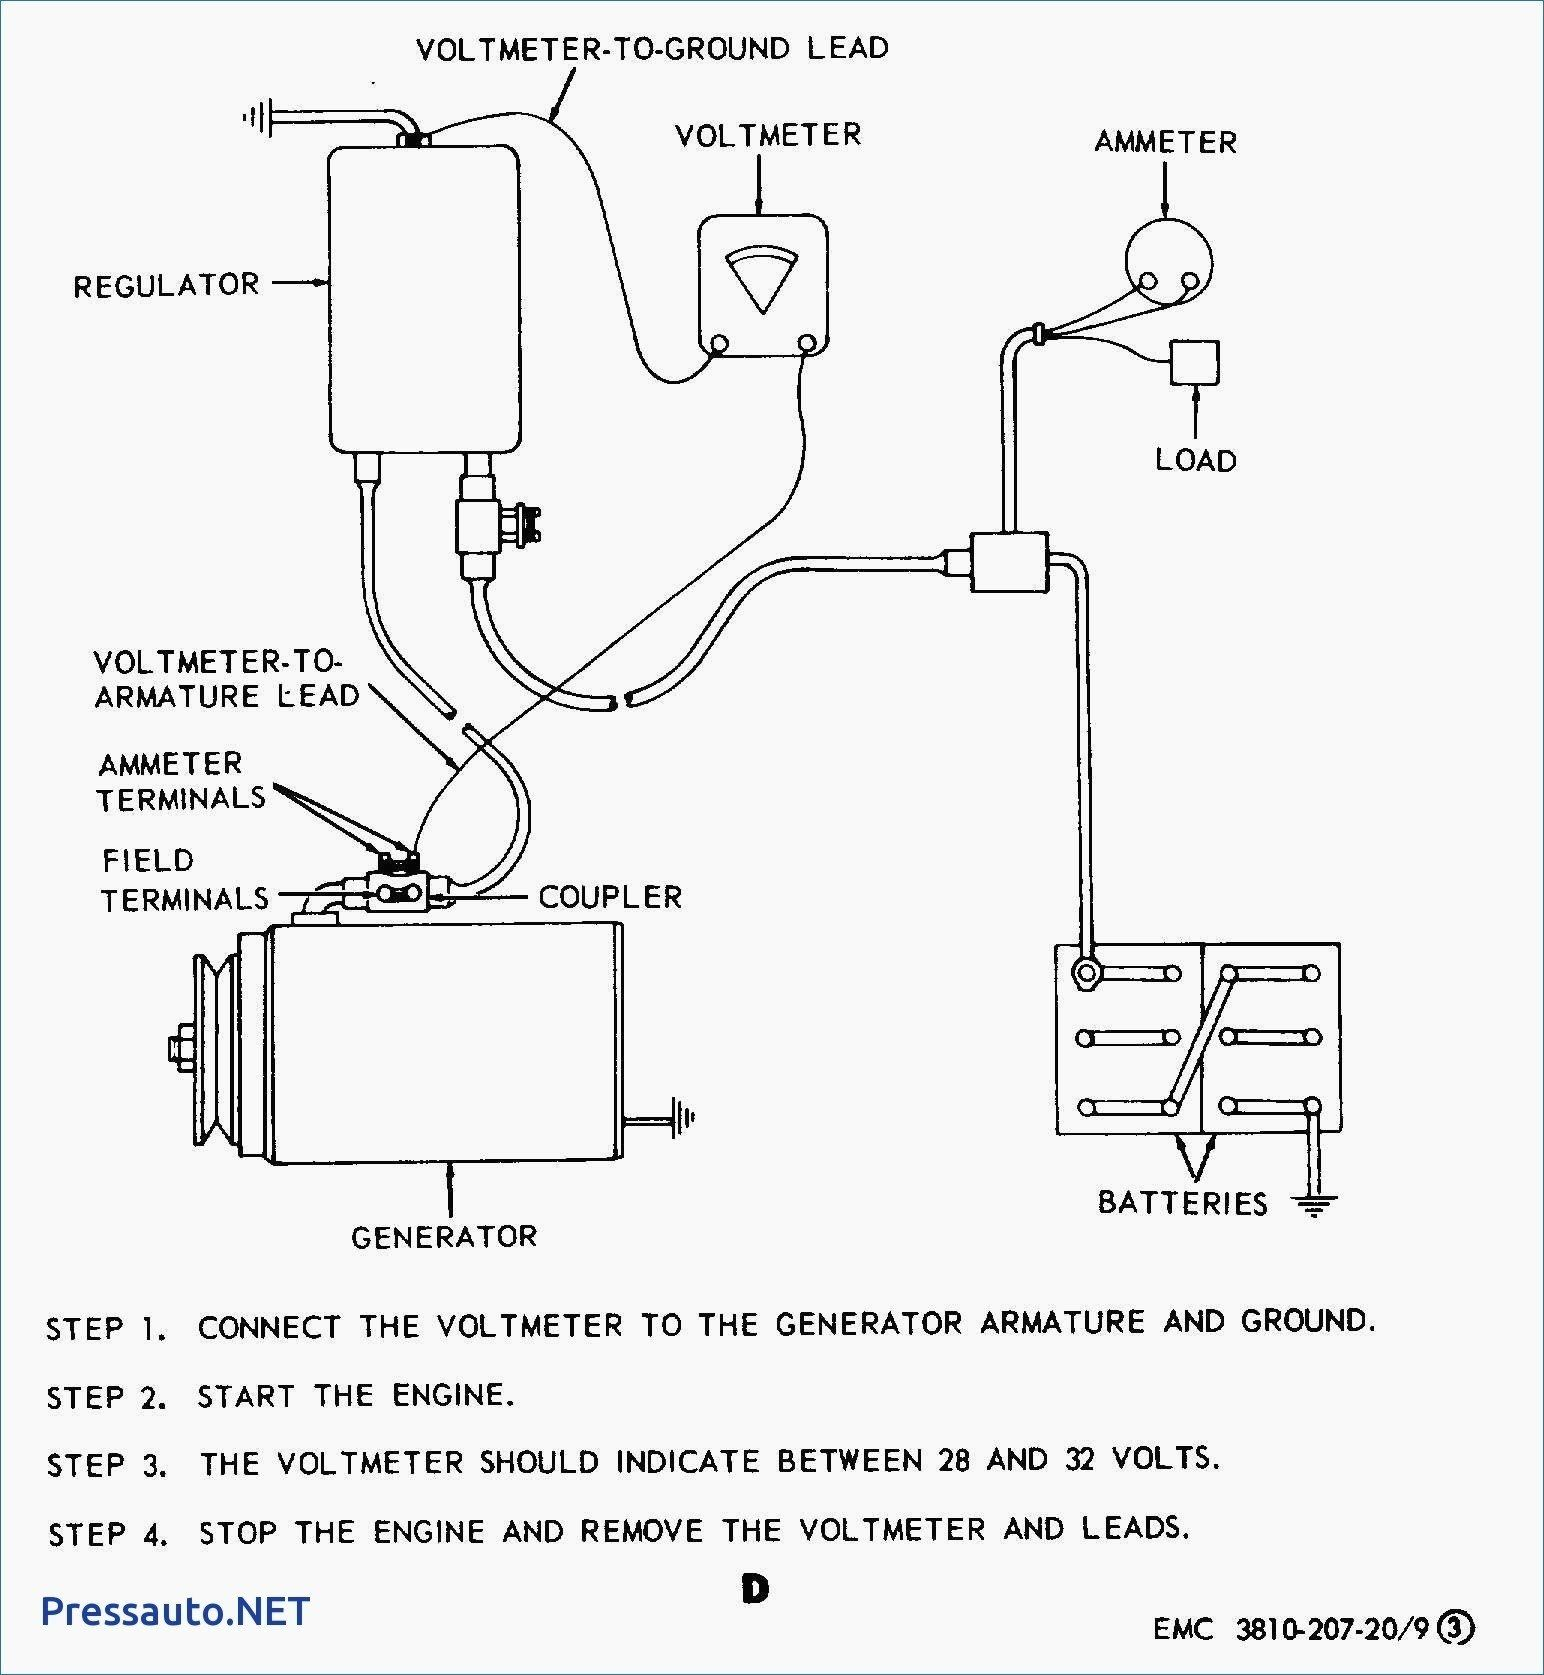 [SCHEMATICS_4FD]  Delco Regulator Wiring Diagram | Wiring Diagram | Delco Remy External Regulator Wiring Schematic |  | Wiring Diagram - AutoScout24